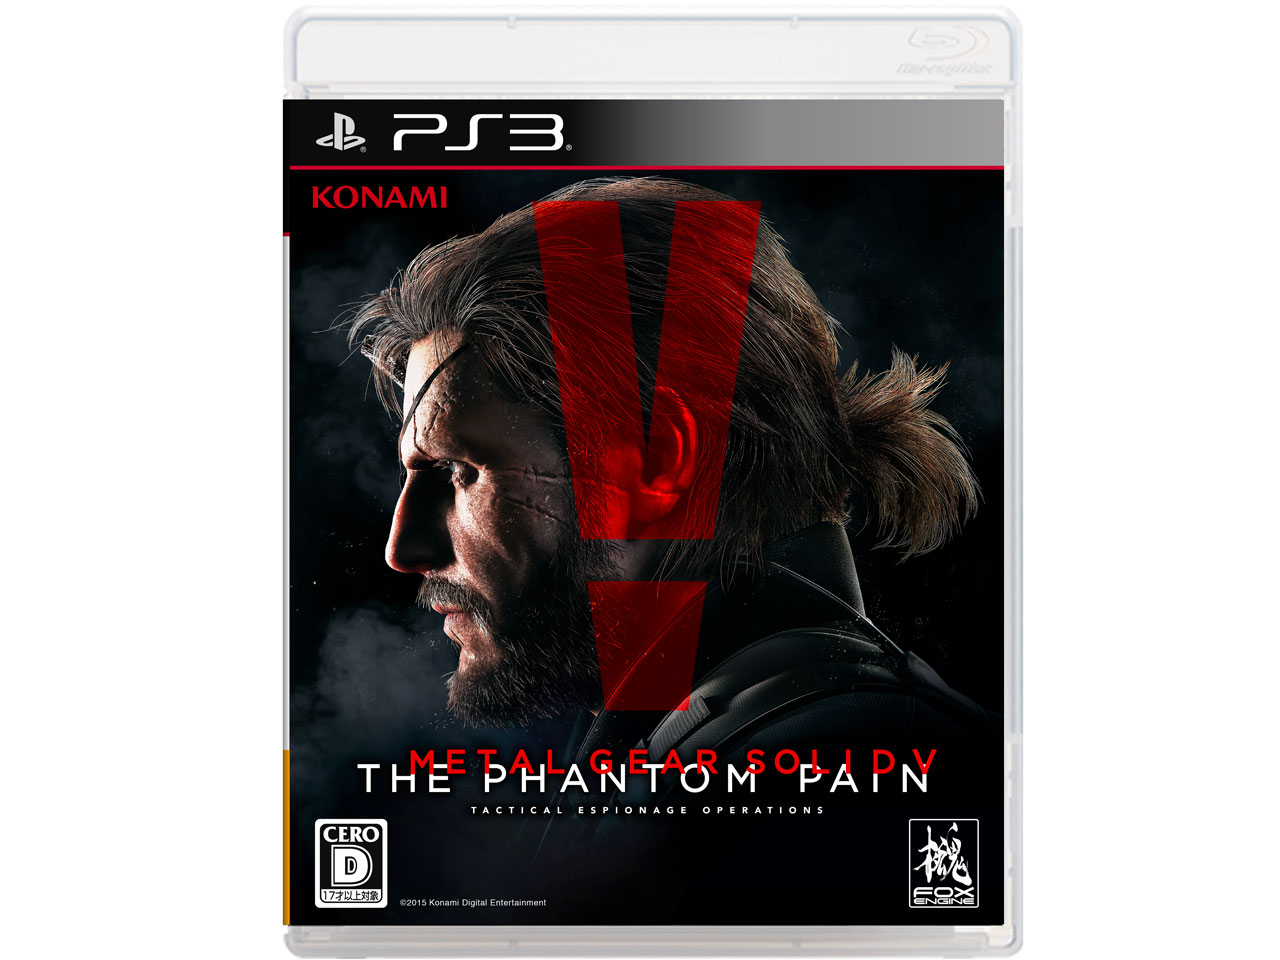 METAL GEAR SOLID V: THE PHANTOM PAIN [通常版] [PS3] の製品画像